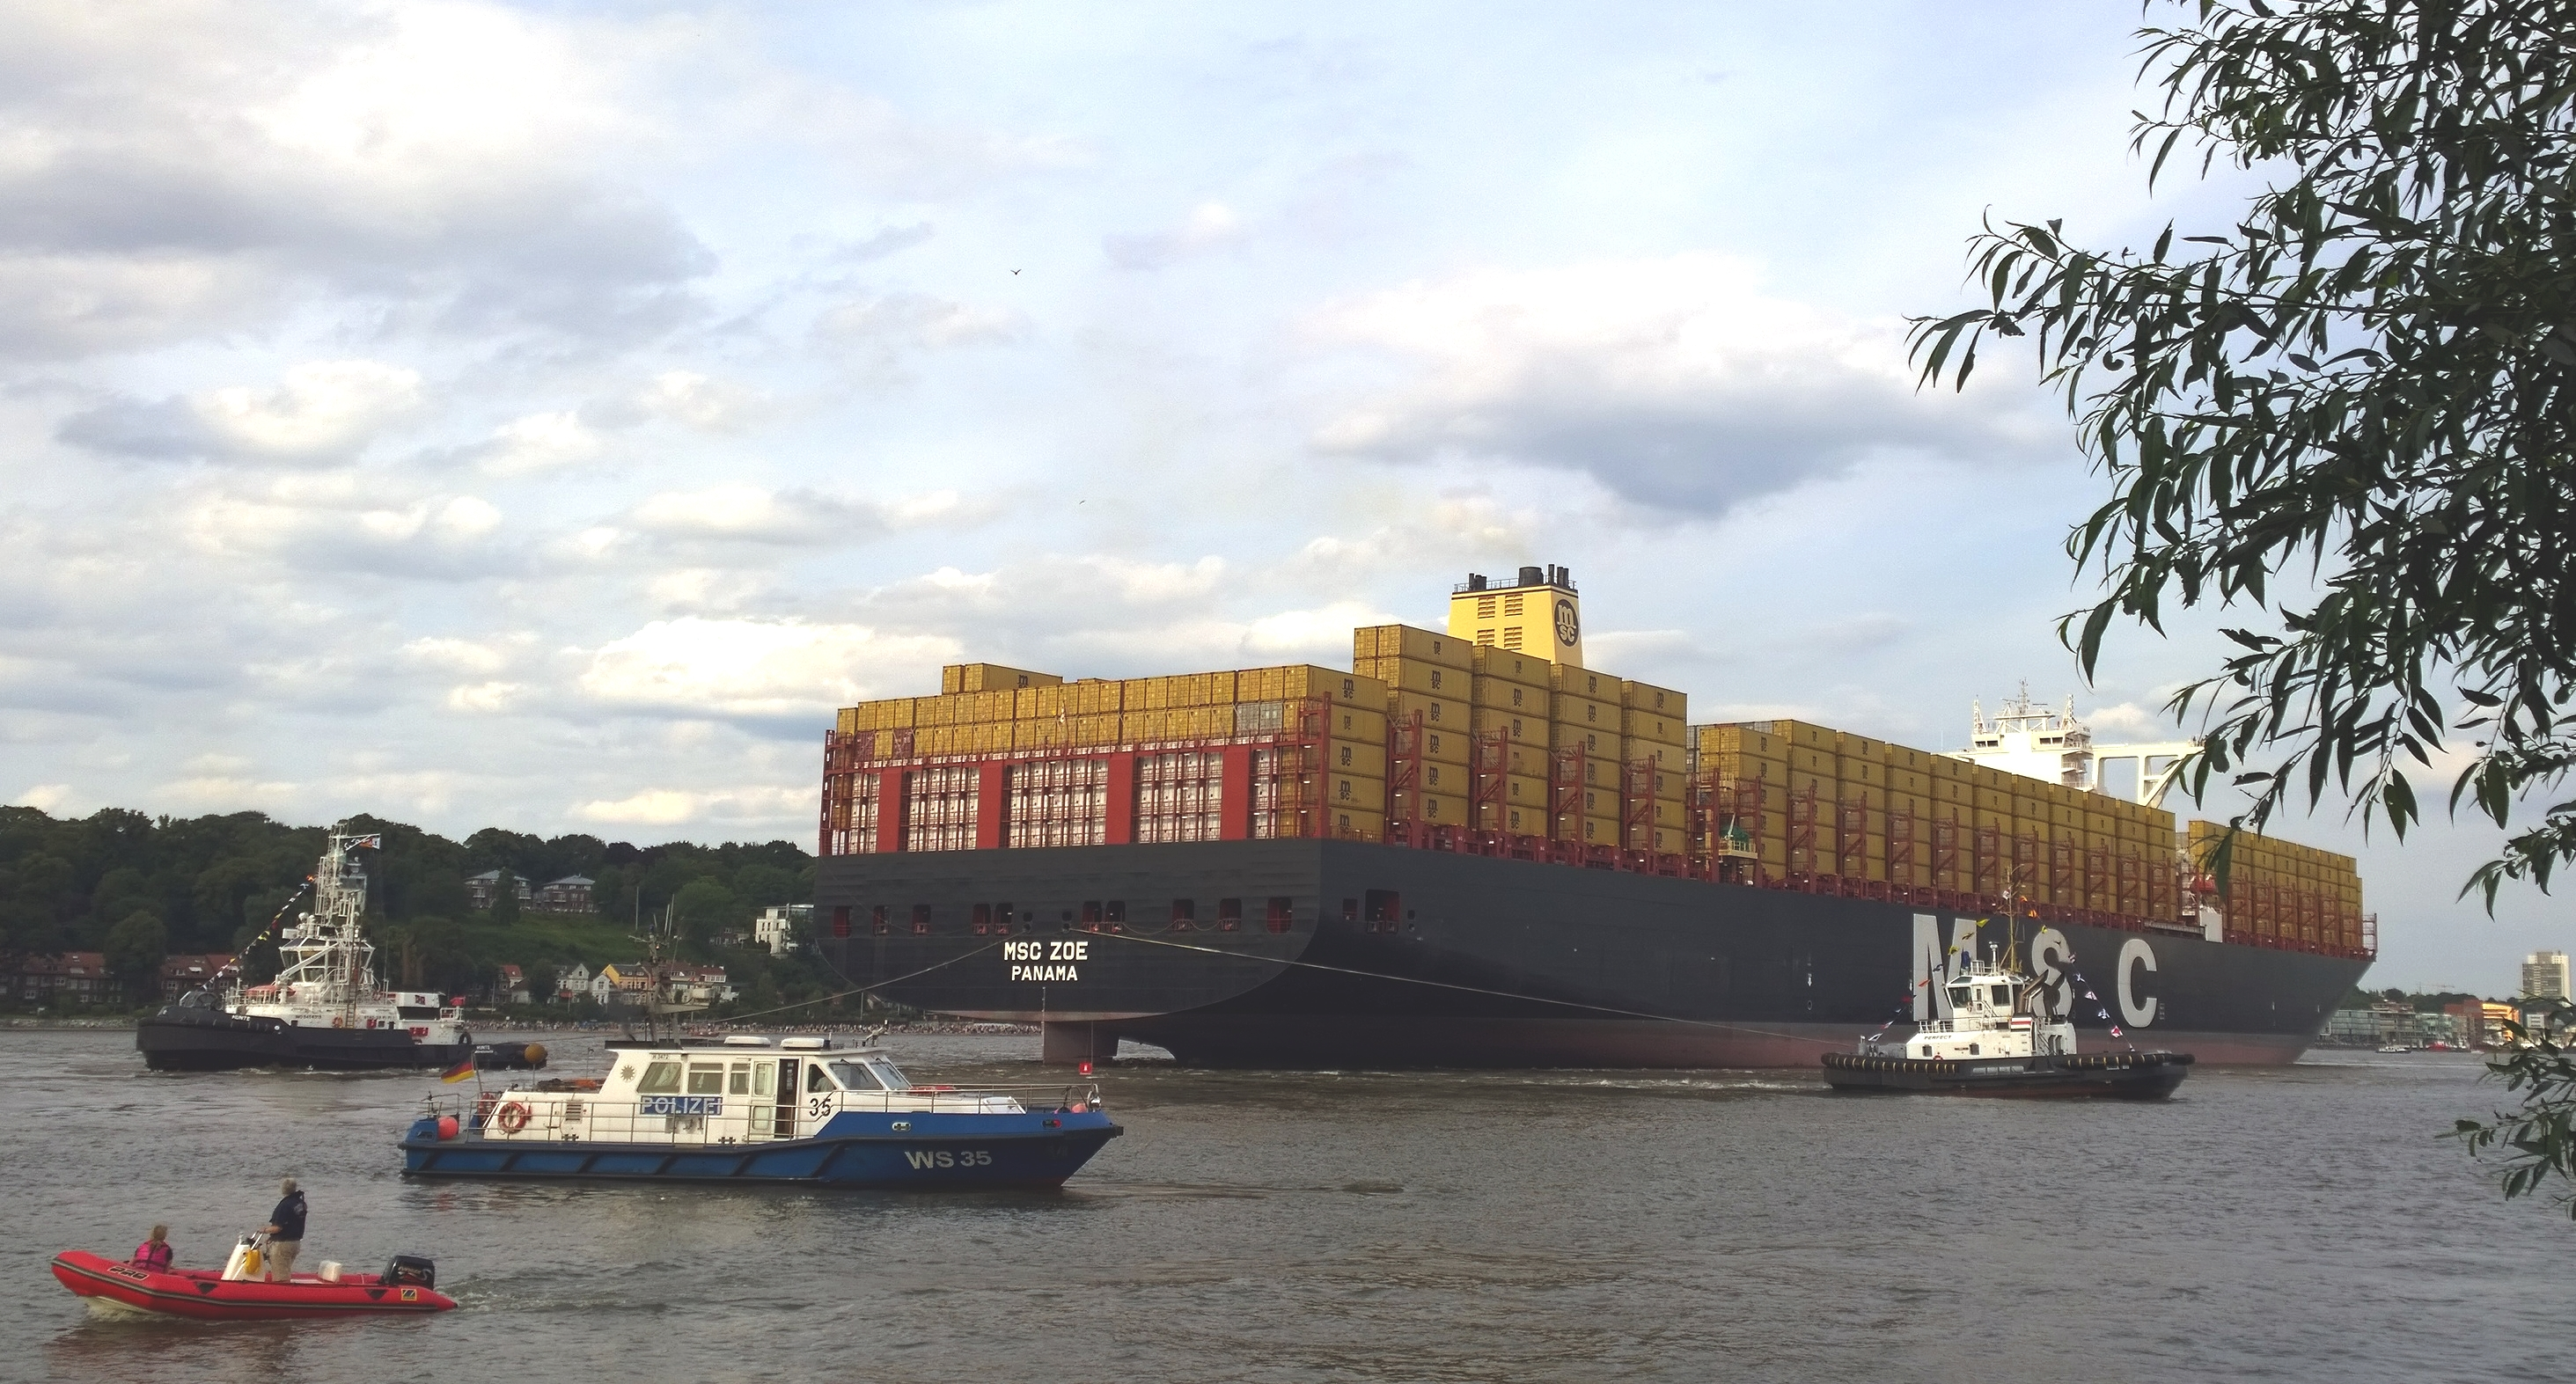 File:Container ship MSC Zoe on the river Elbe in front of